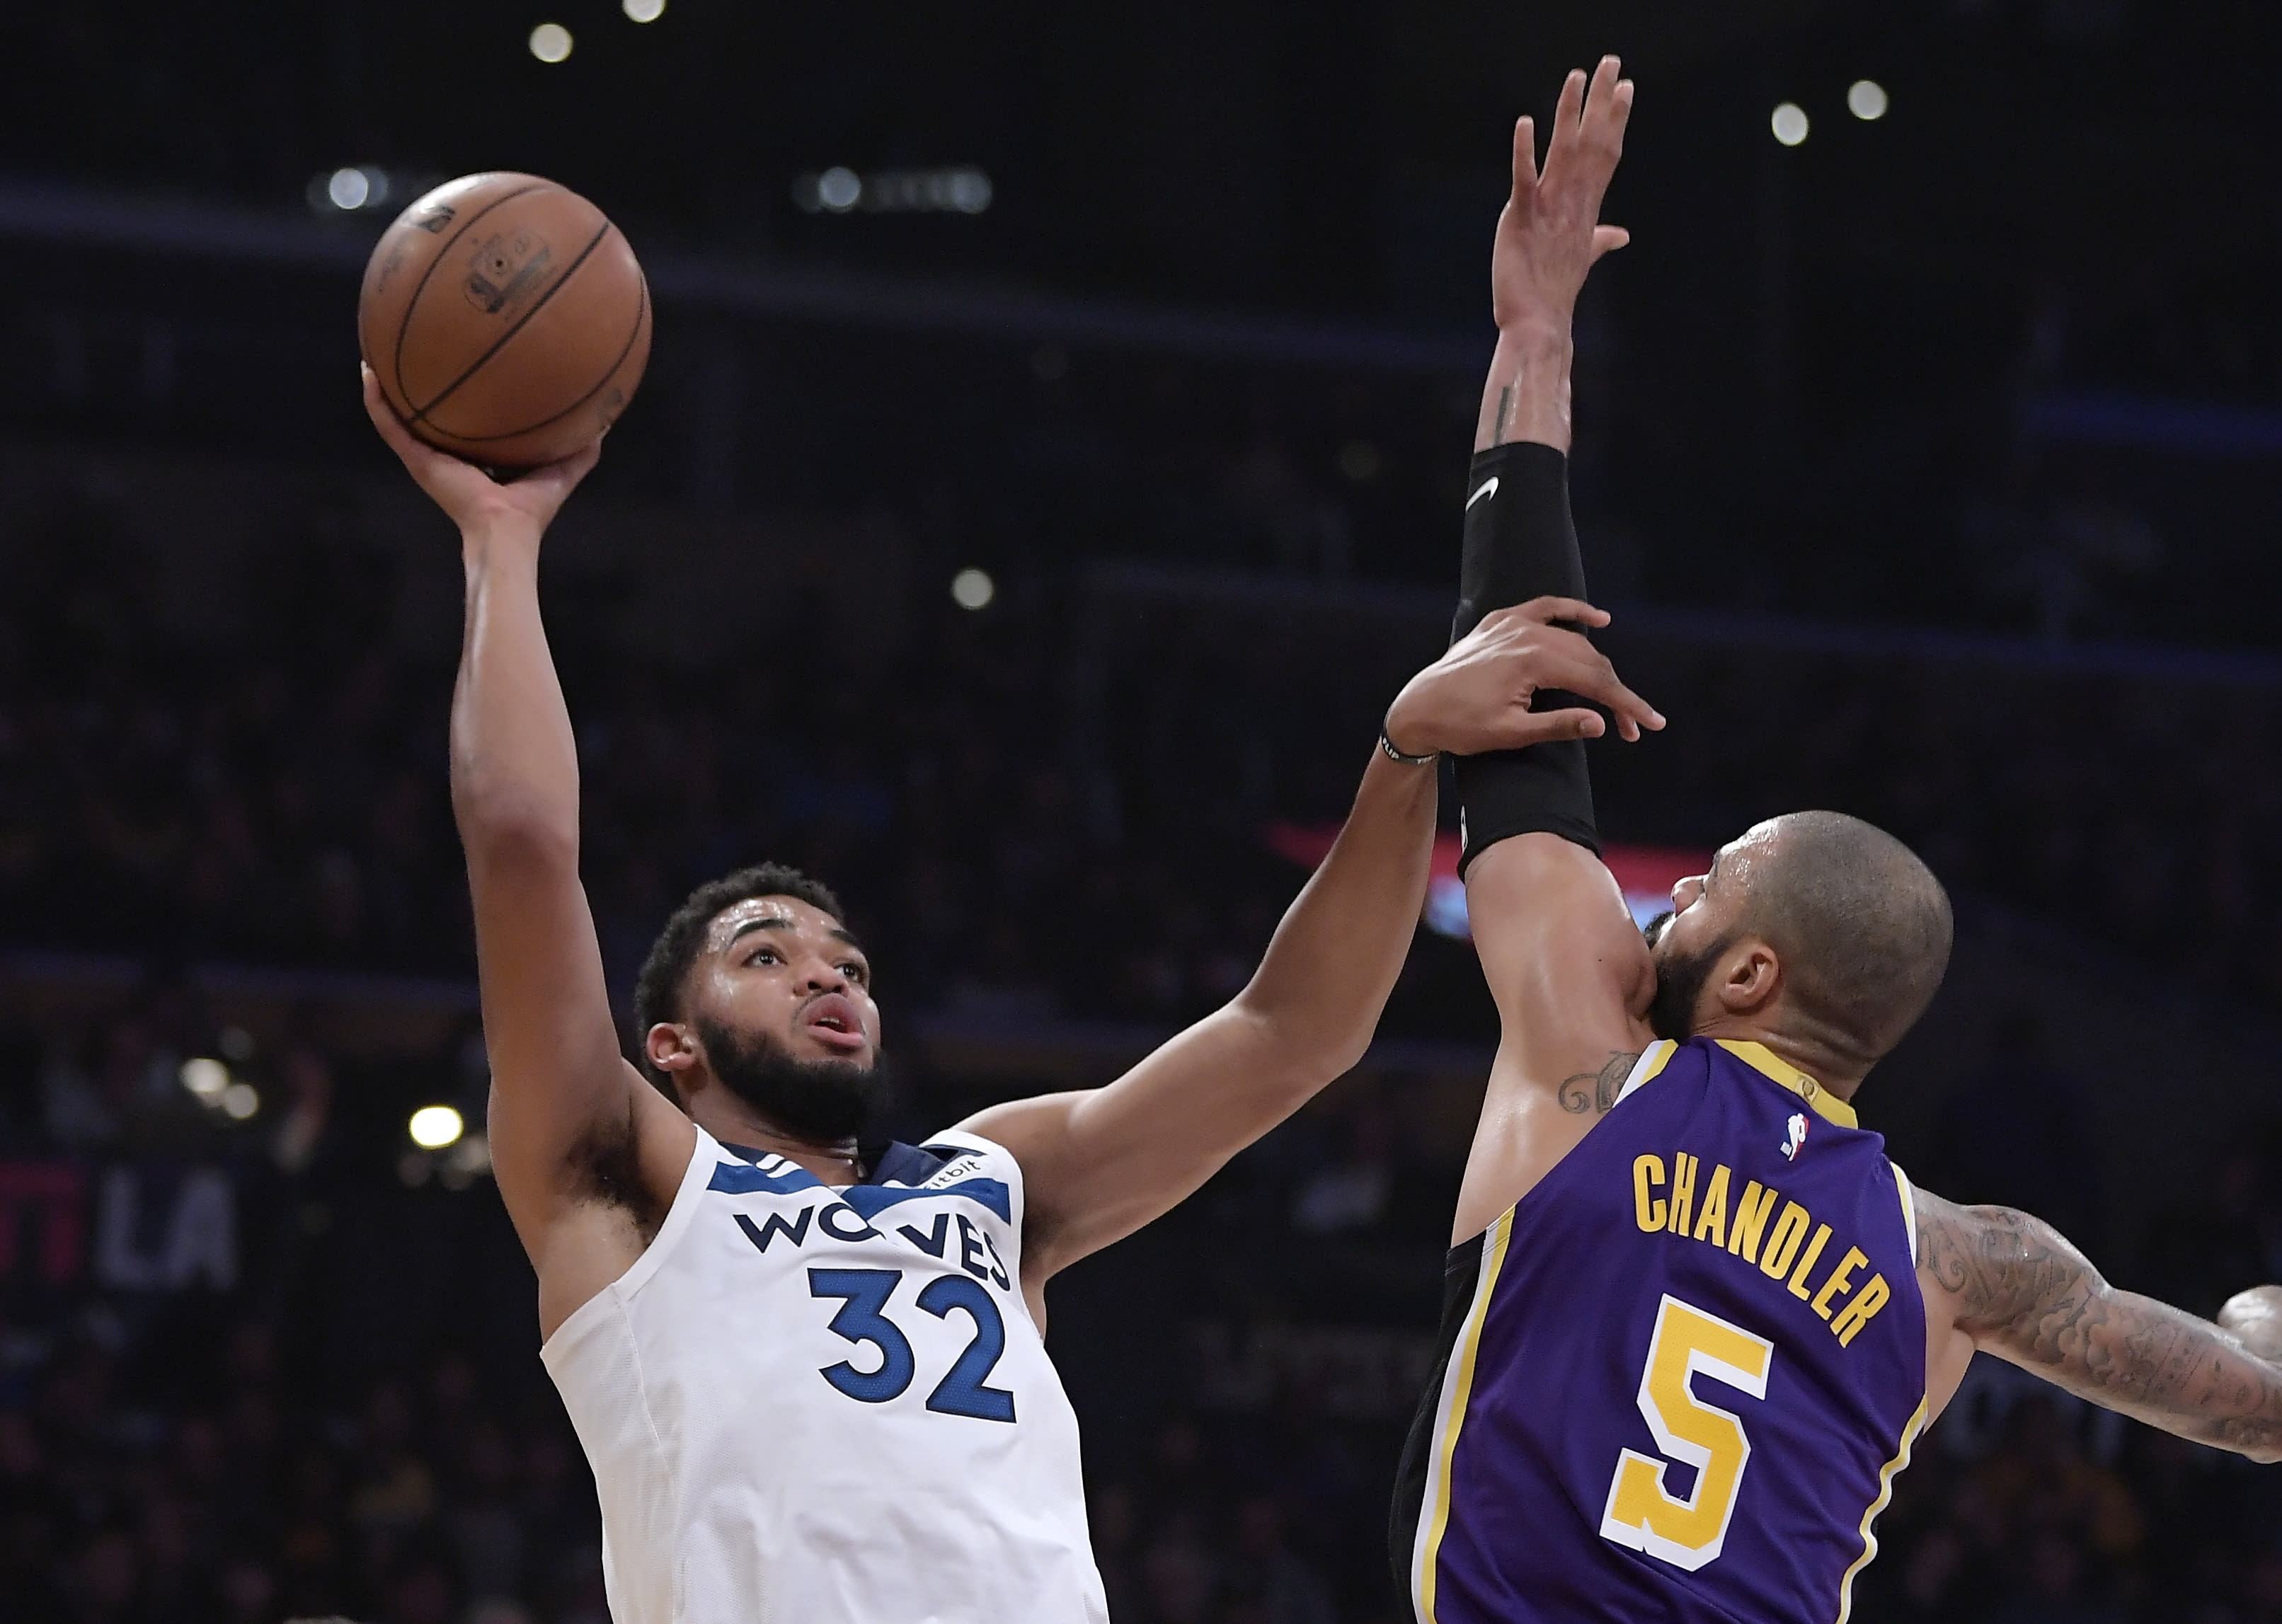 Minnesota Timberwolves center Karl-Anthony Towns, left, shoots as Los Angeles Lakers center Tyson Chandler defends during the first half of an NBA basketball game Wednesday, Nov. 7, 2018, in Los Angeles. (AP Photo/Mark J. Terrill)